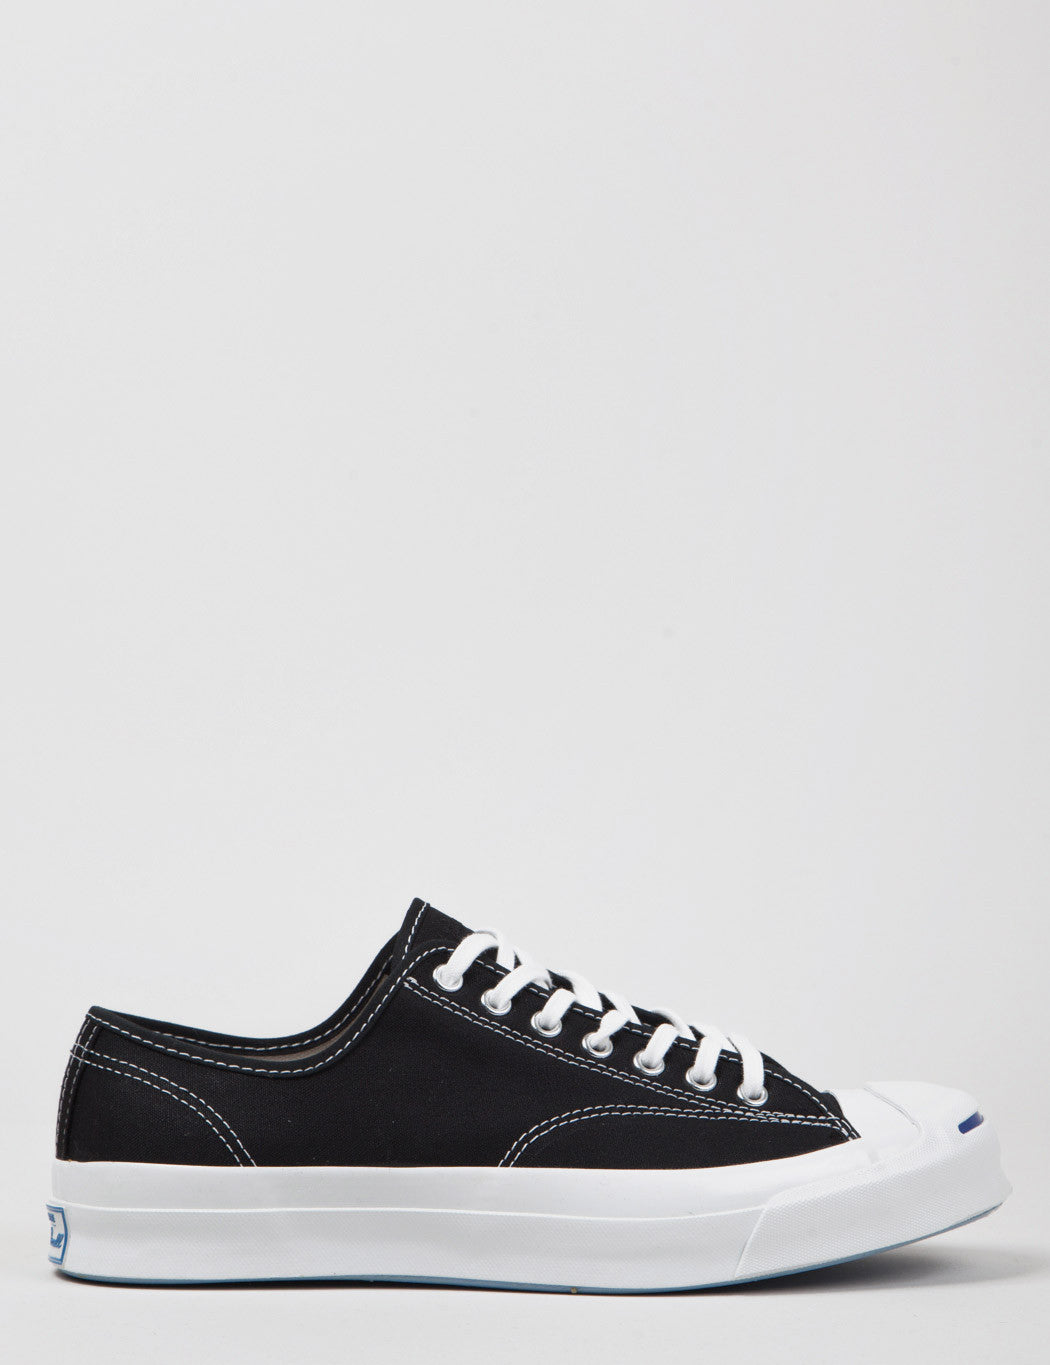 Converse Jack Purcell Signature Canvas - Black